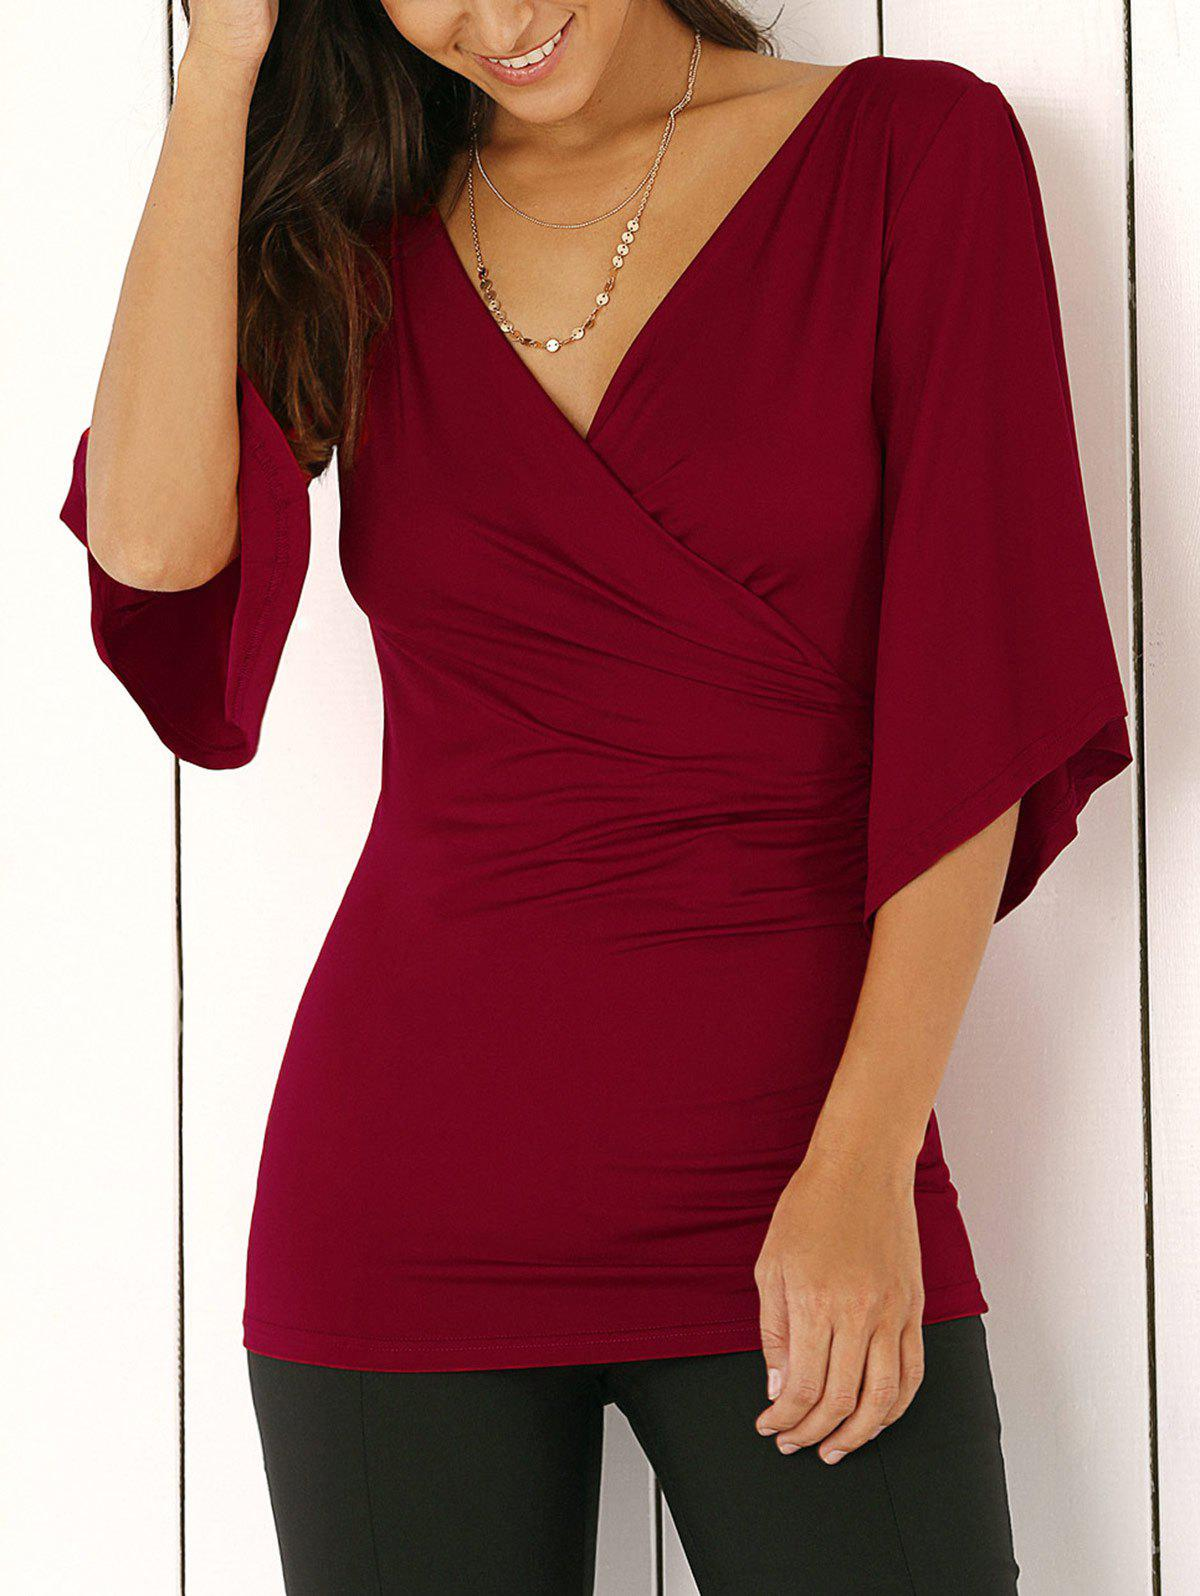 Wrap Plunge Neck Slimming Blouse - WINE RED L